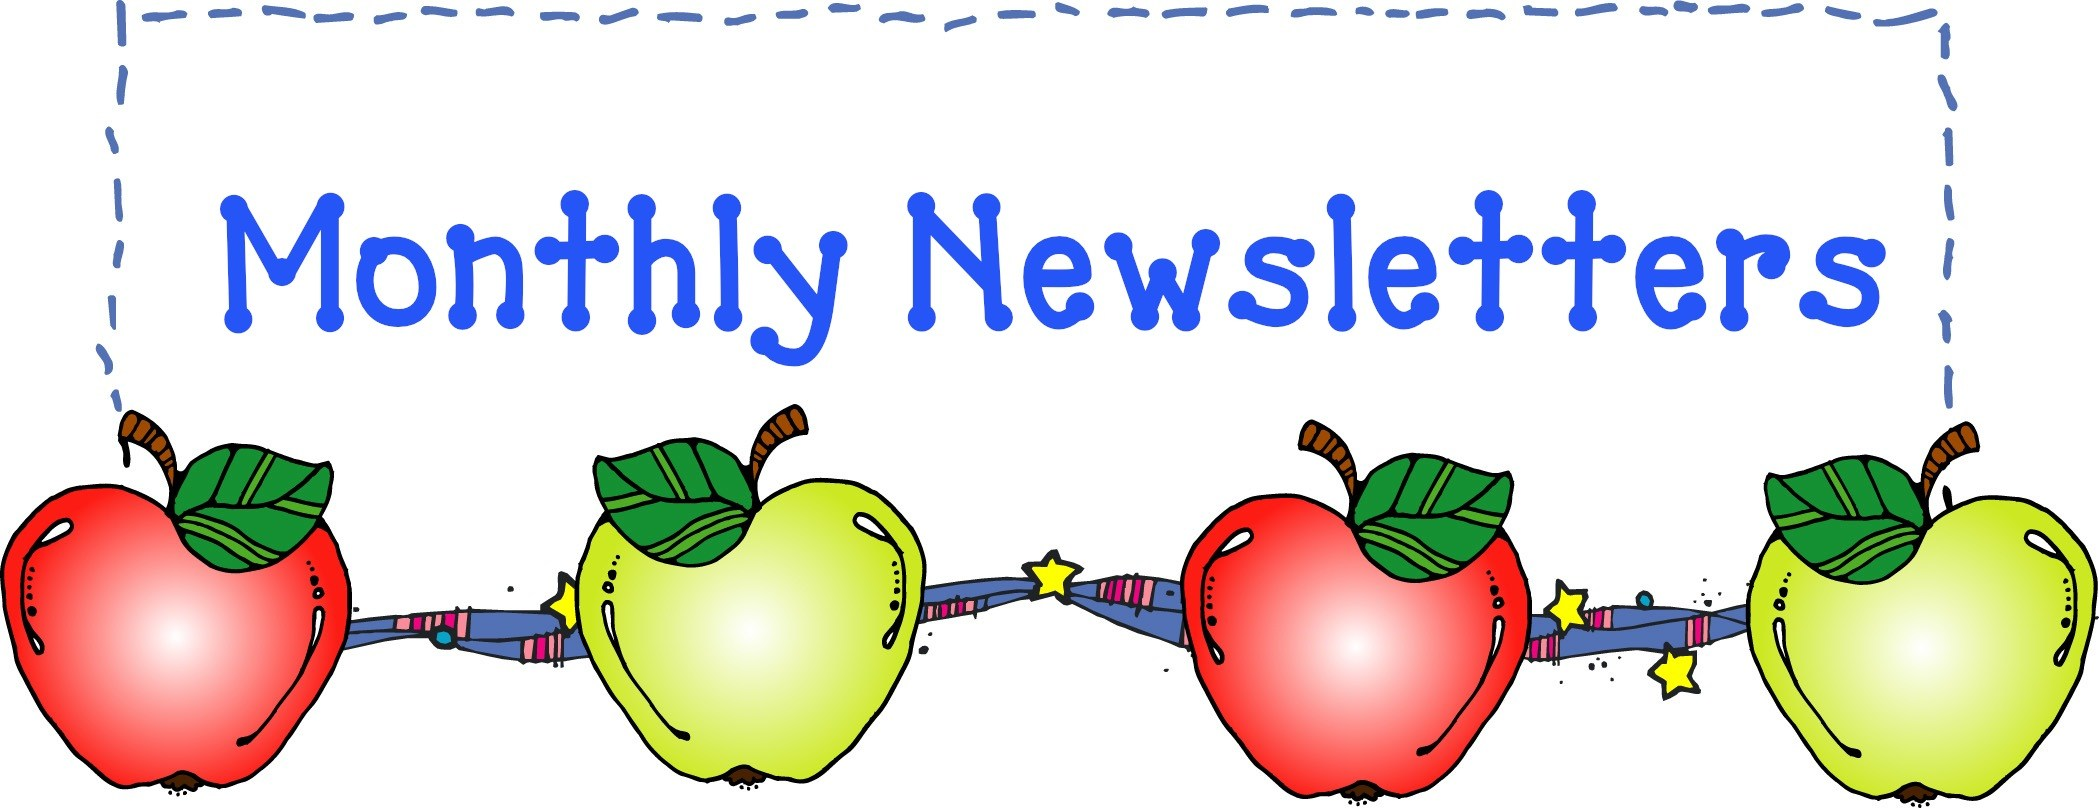 Clip art of apples and monthly newsletter title